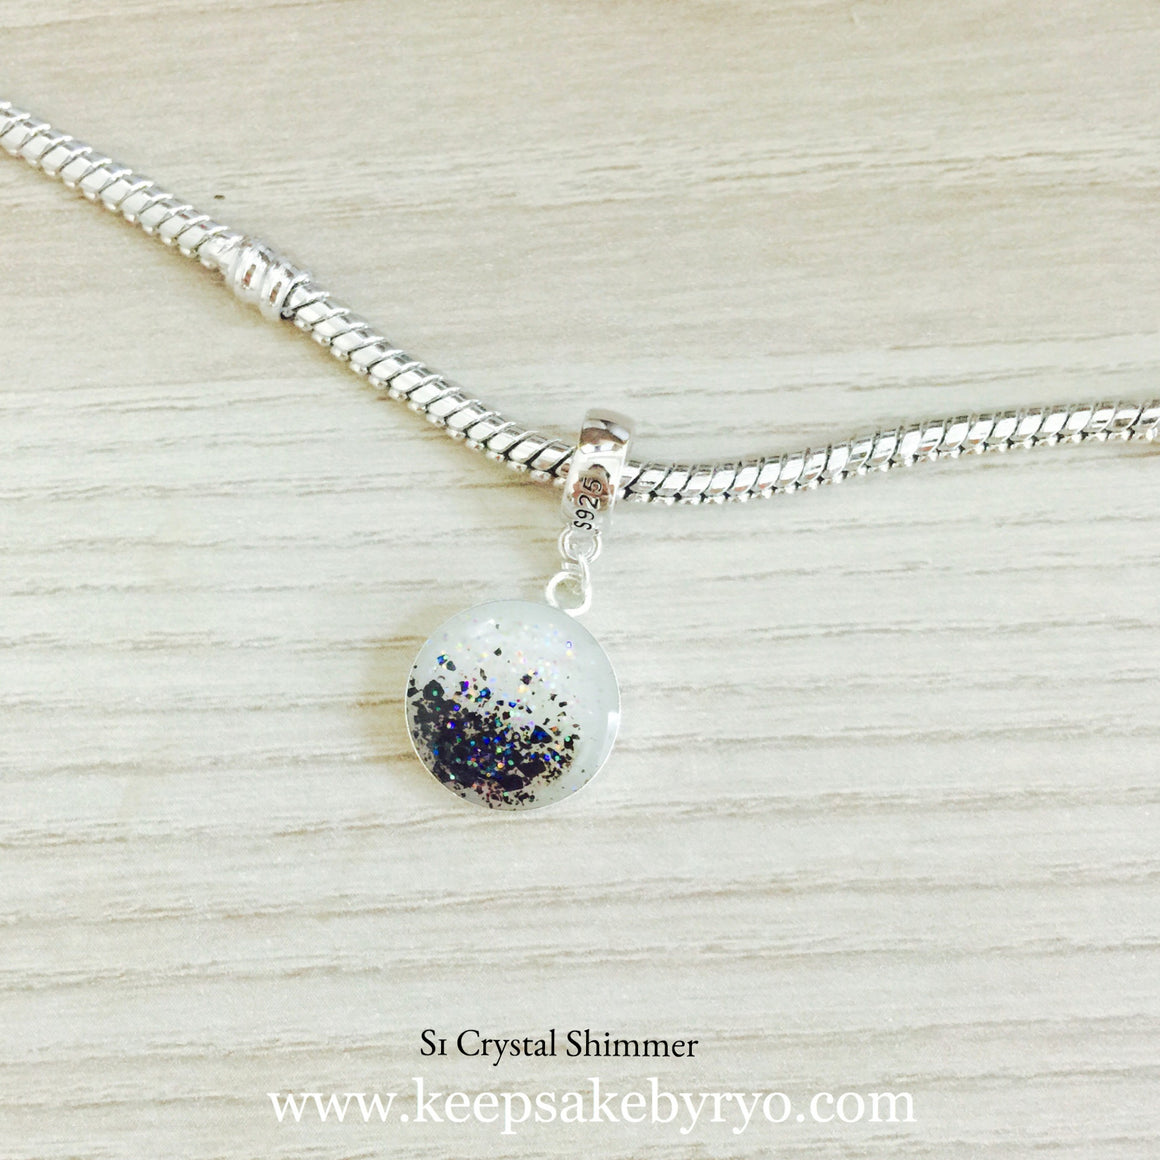 DANGLING CHARM WITH BREASTMILK AND CORD DUST